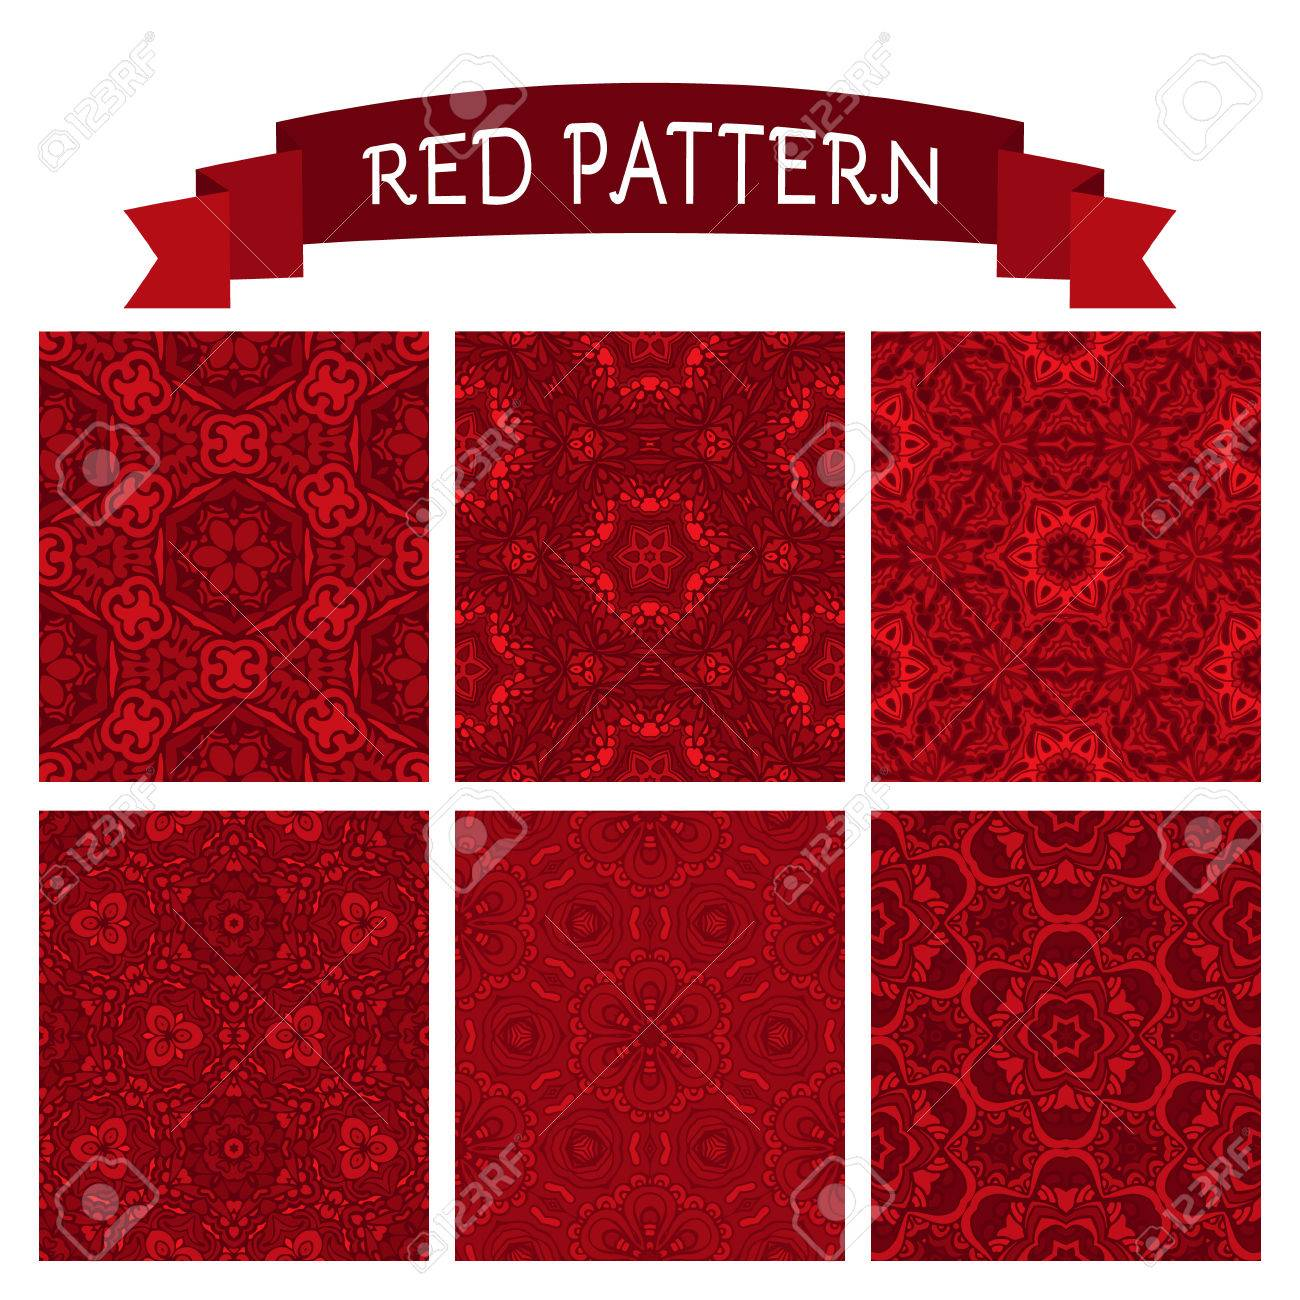 Christmas Embroidery Patterns Free.Set Of Christmas Embroidery Patterns In Red Perfect For Wallpapers